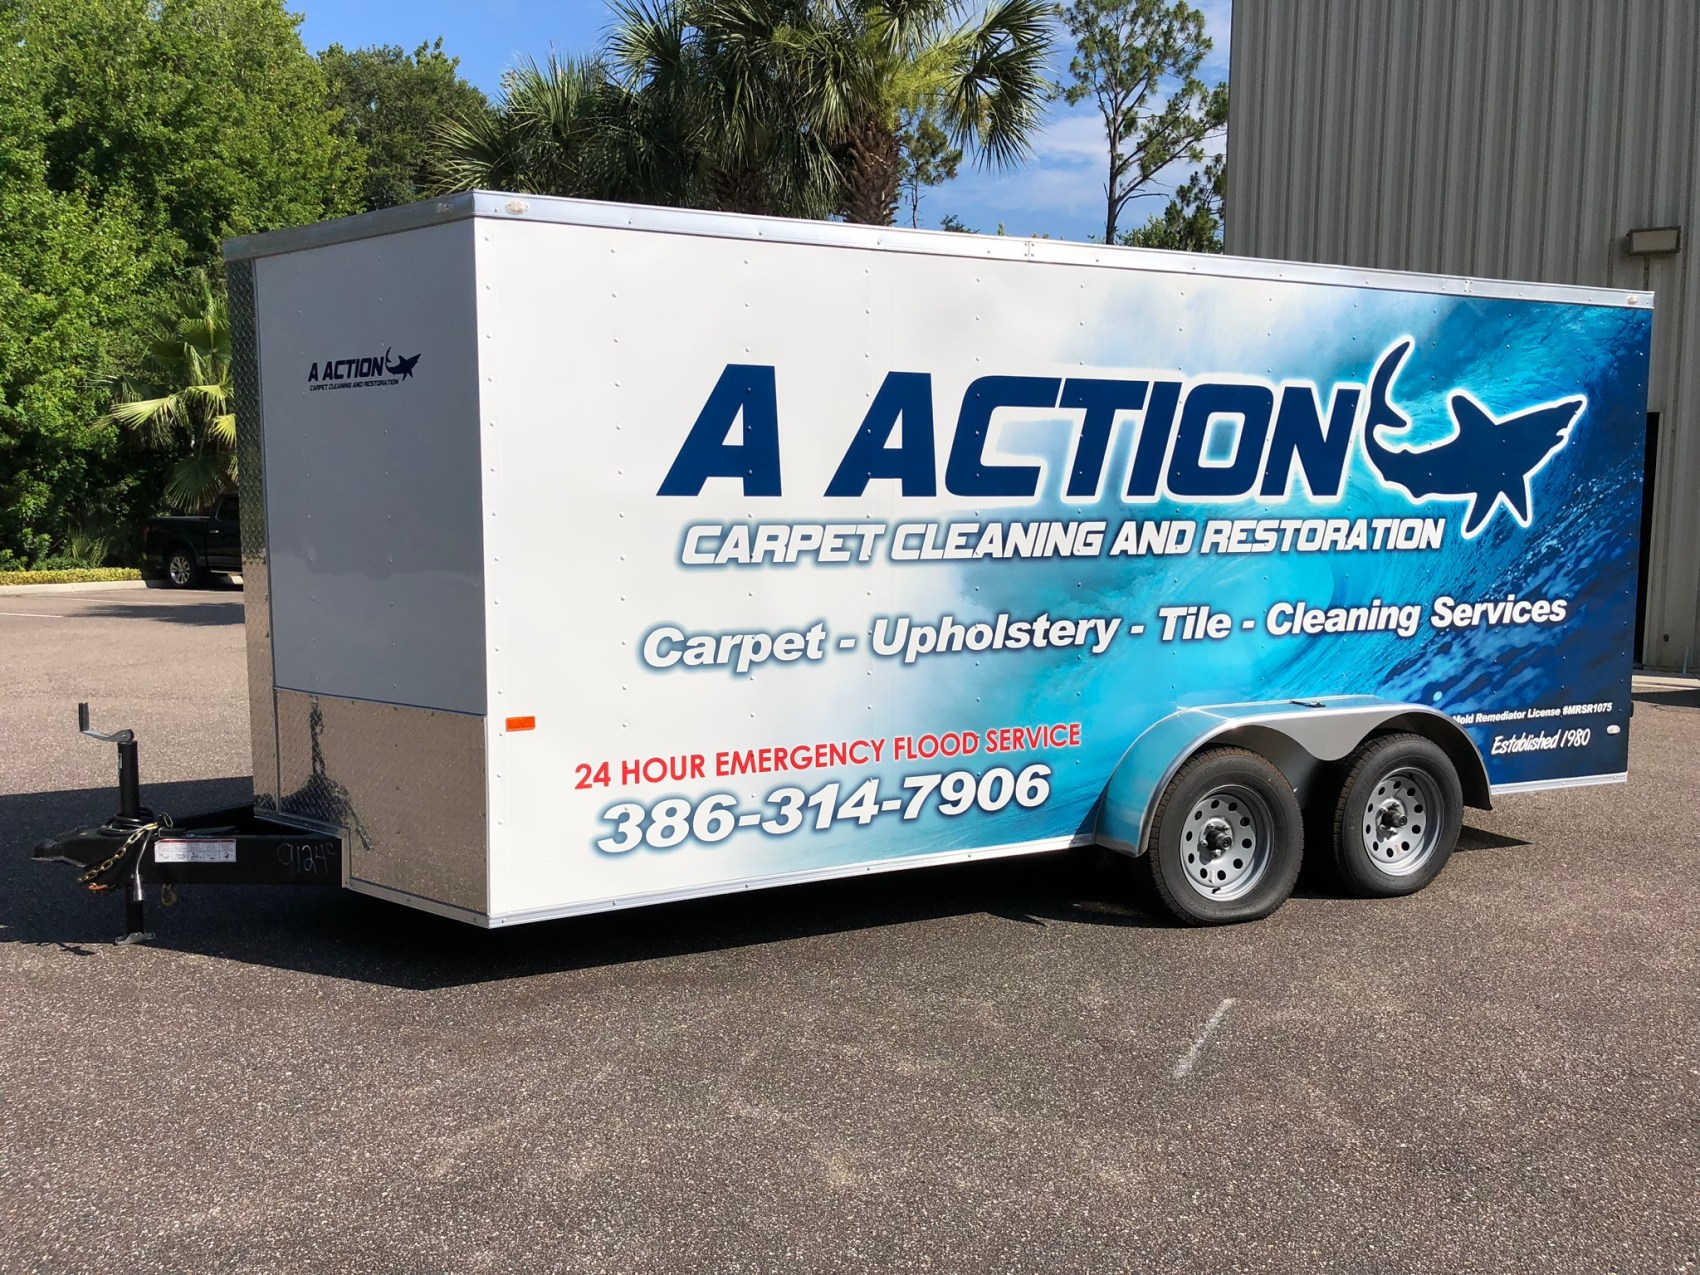 Customer Decals, Graphics, Wraps, Trailer, and Vehicles